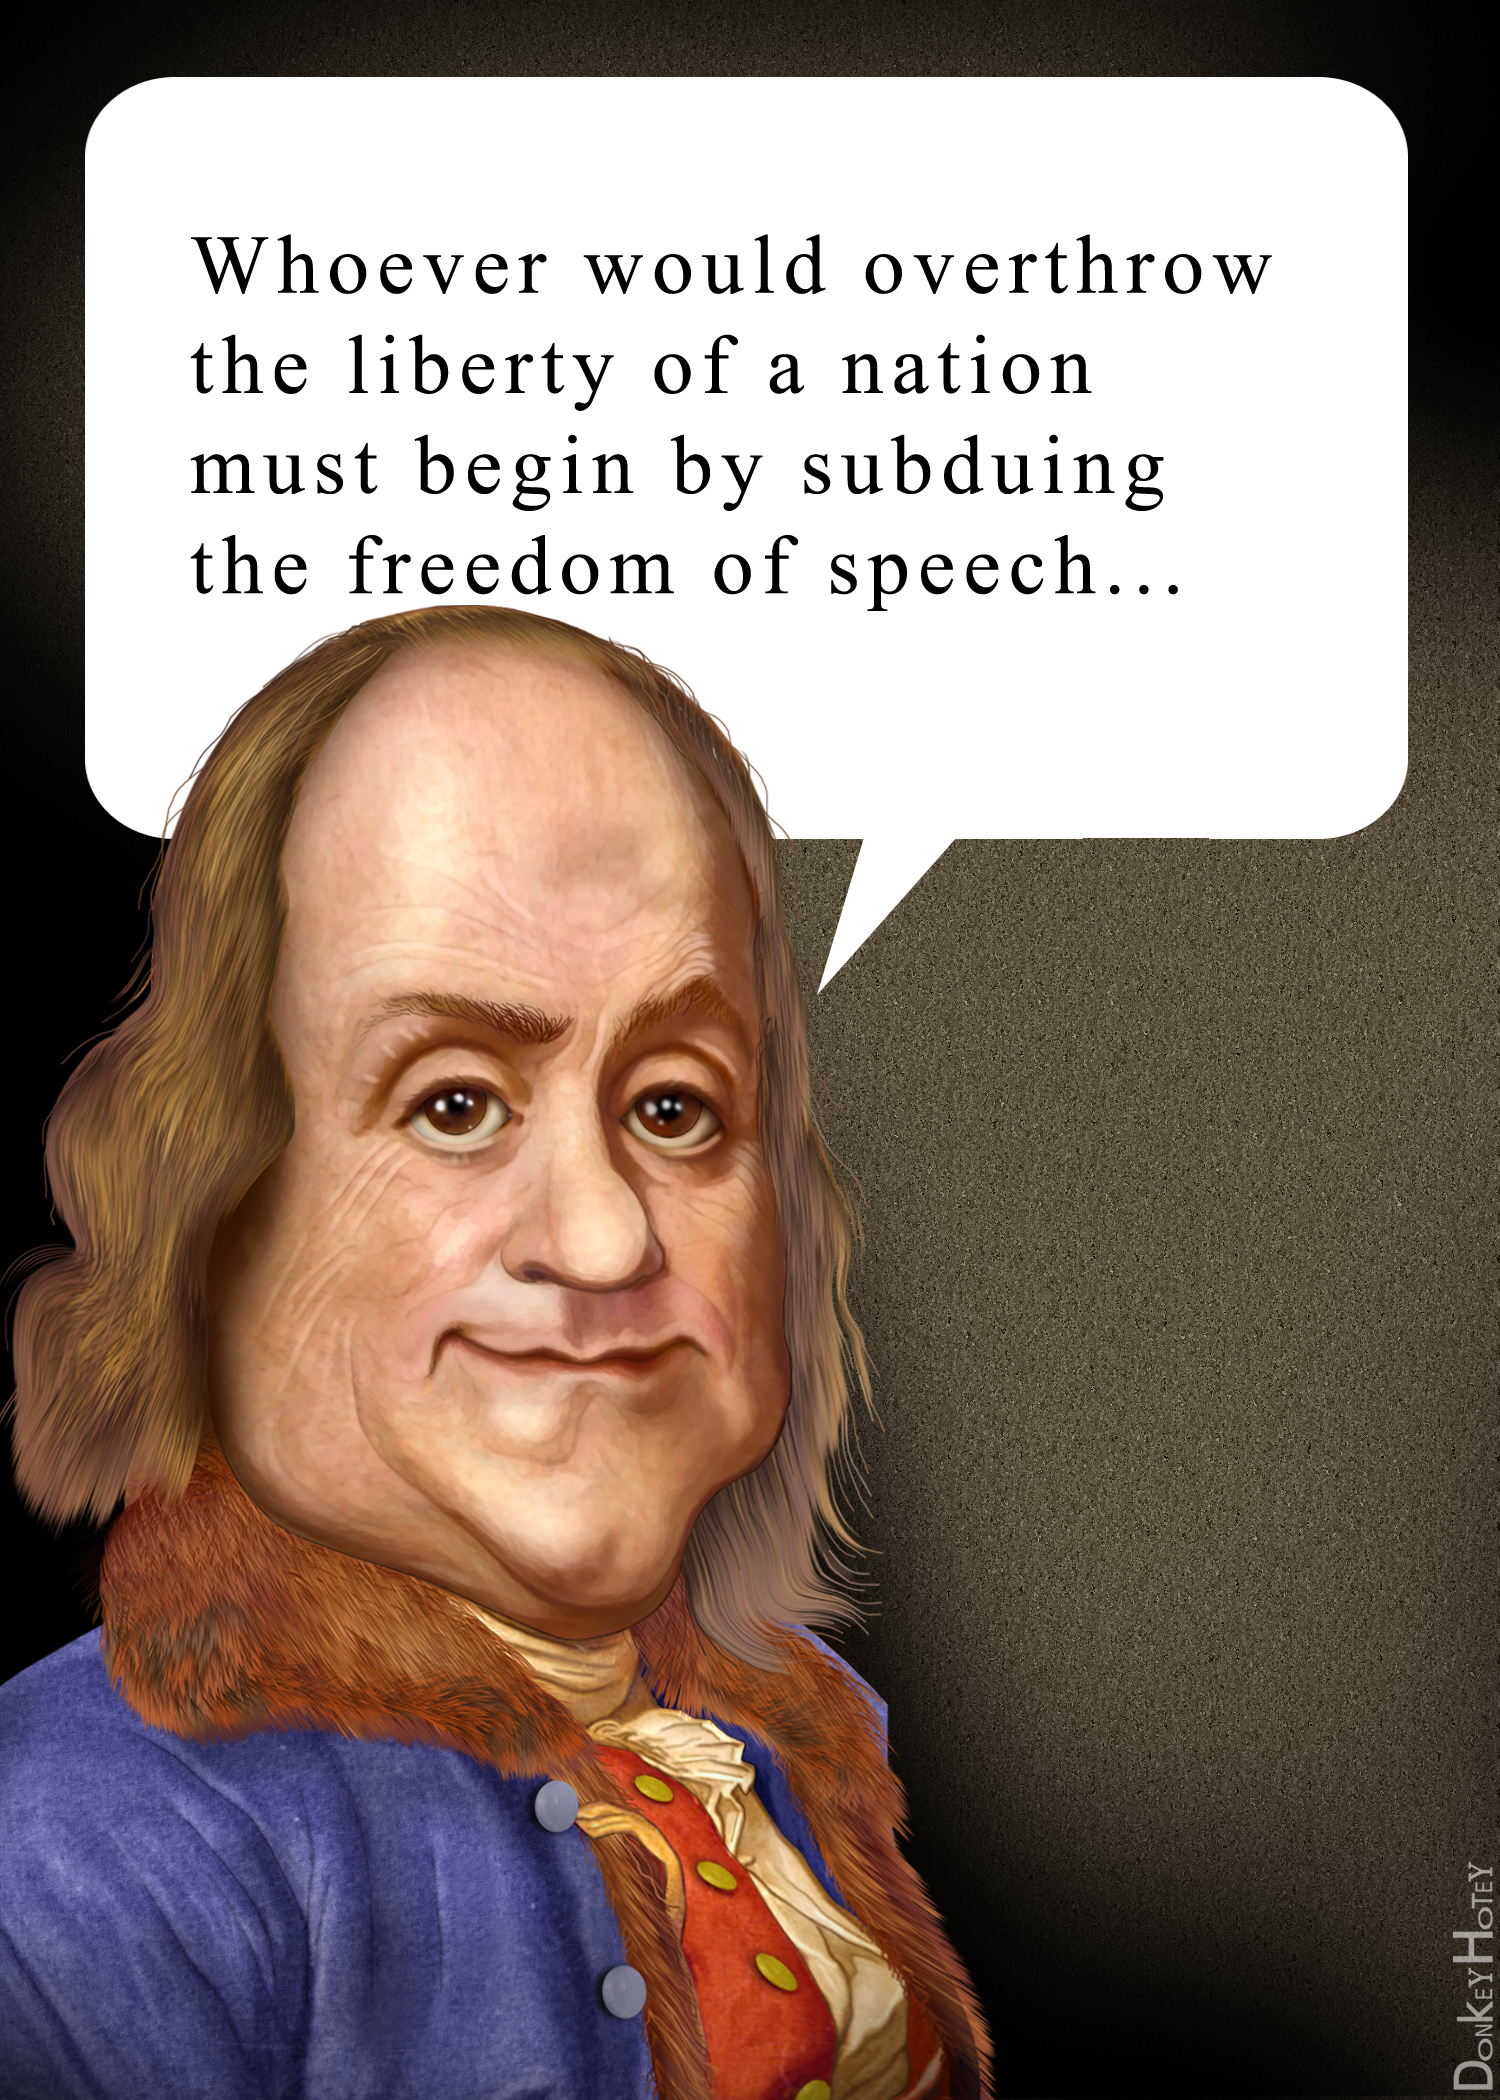 Freedom Of Speech Quotes Filebenjamin Franklin Freedom Of Speech Quote  Wikimedia Commons